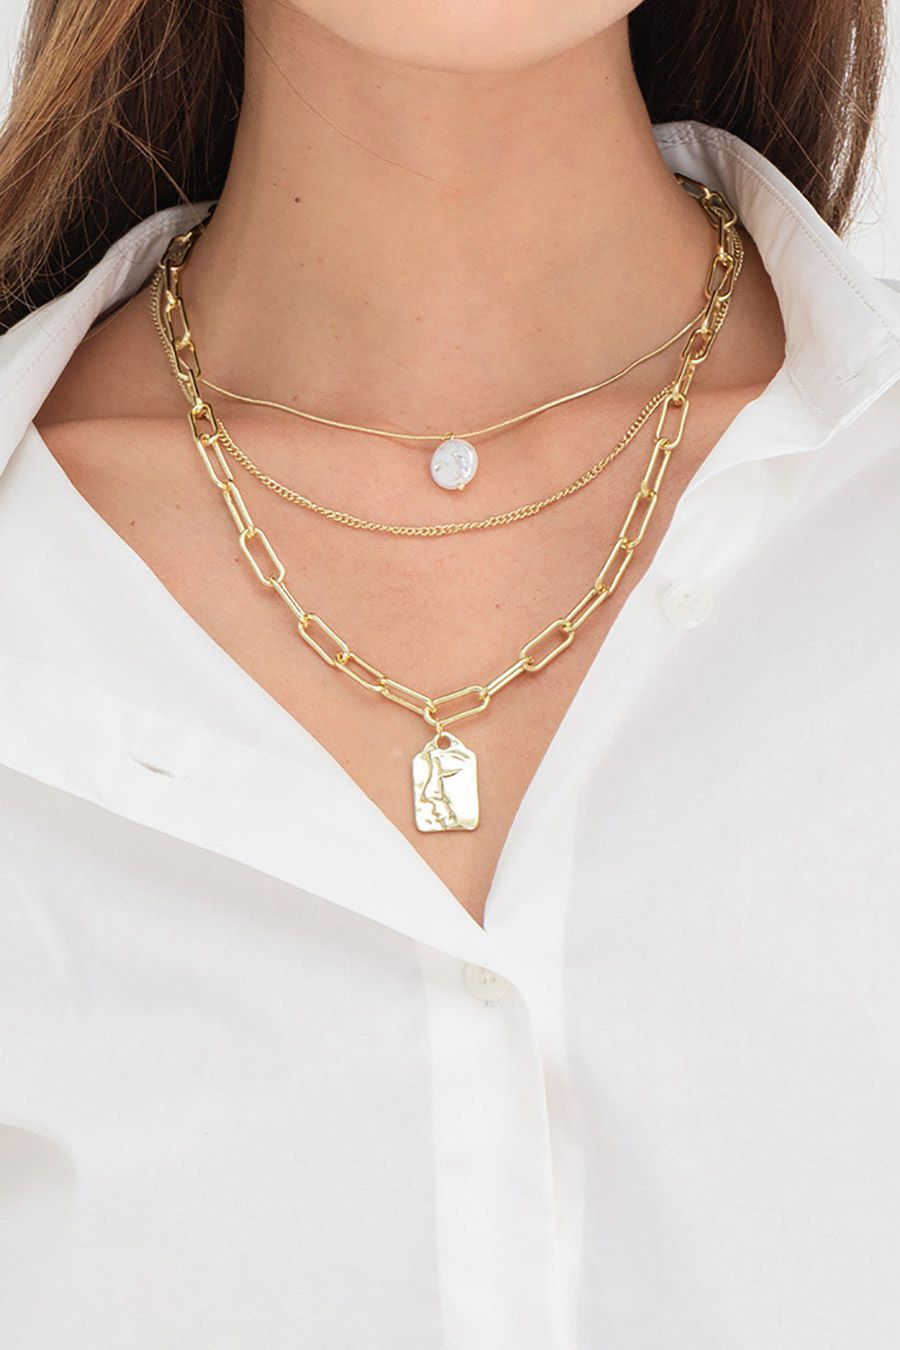 *RESTOCKED* HEMILA NECKLACE - GOLD